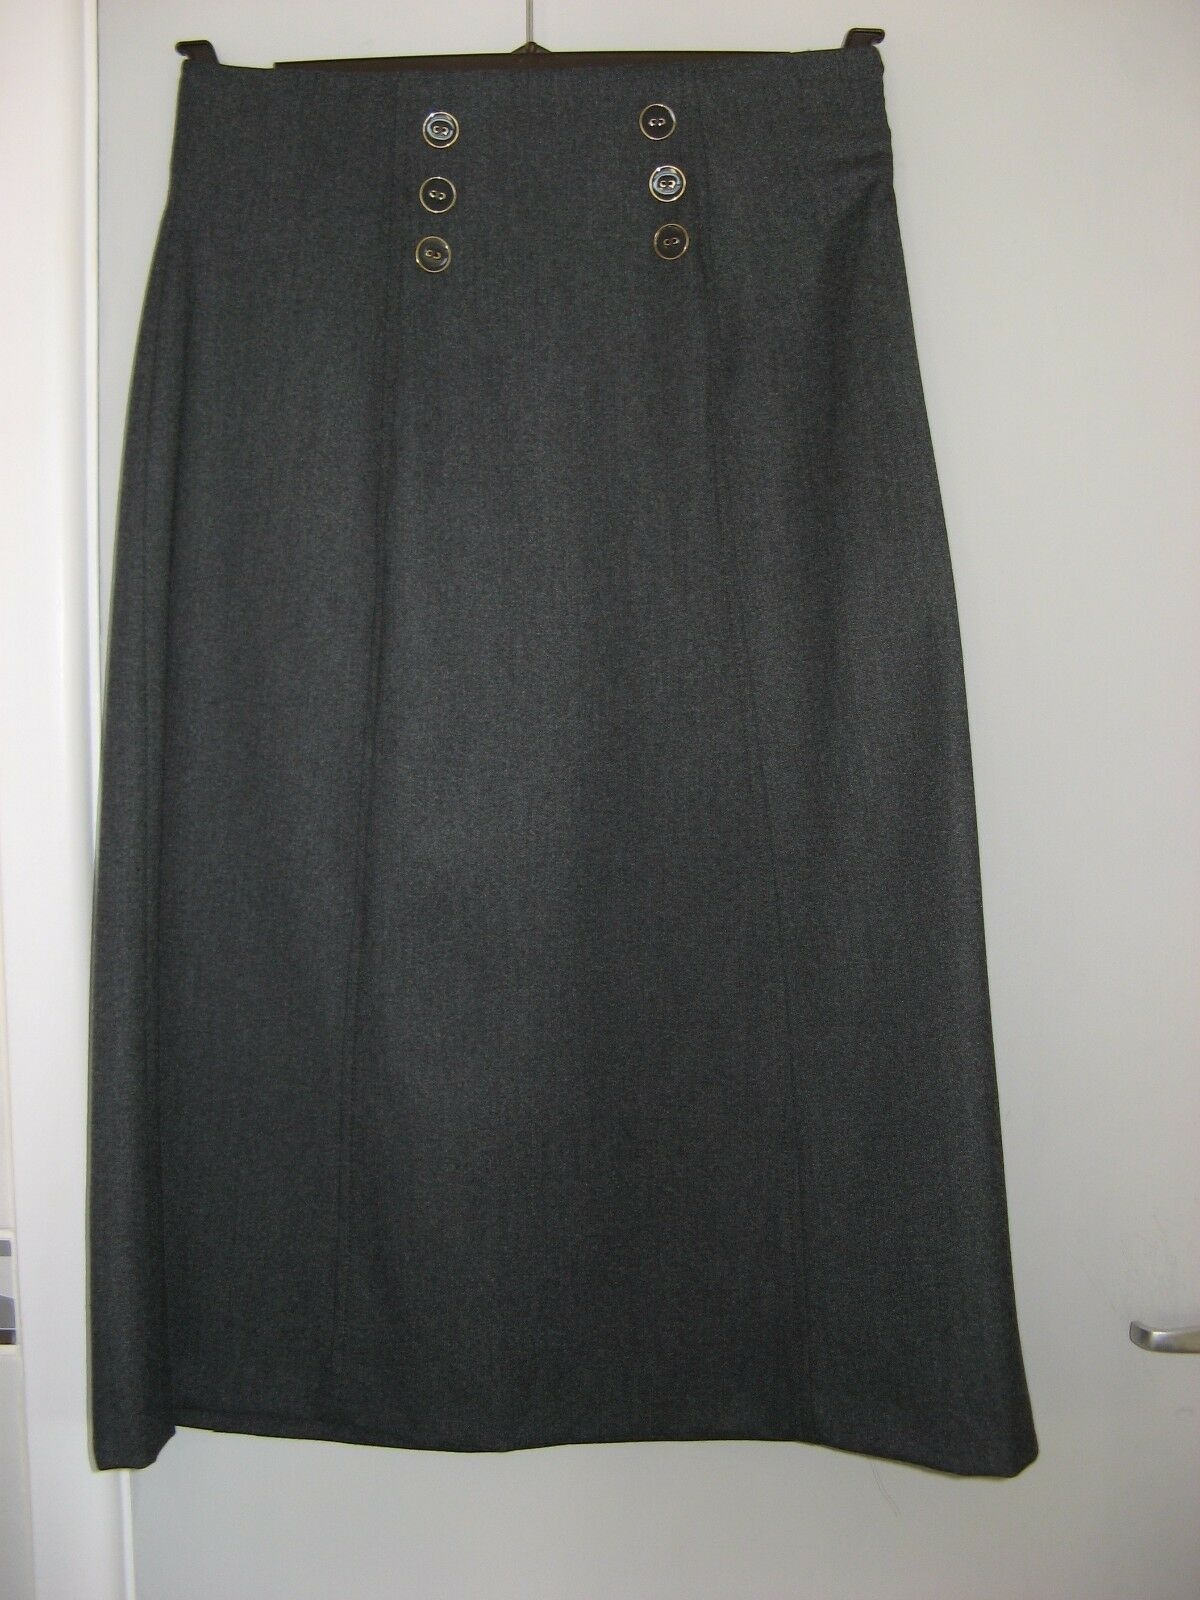 NEW LAURA ASHLEY WOMENS LADIES MID GREY SKIRT SIZE 8